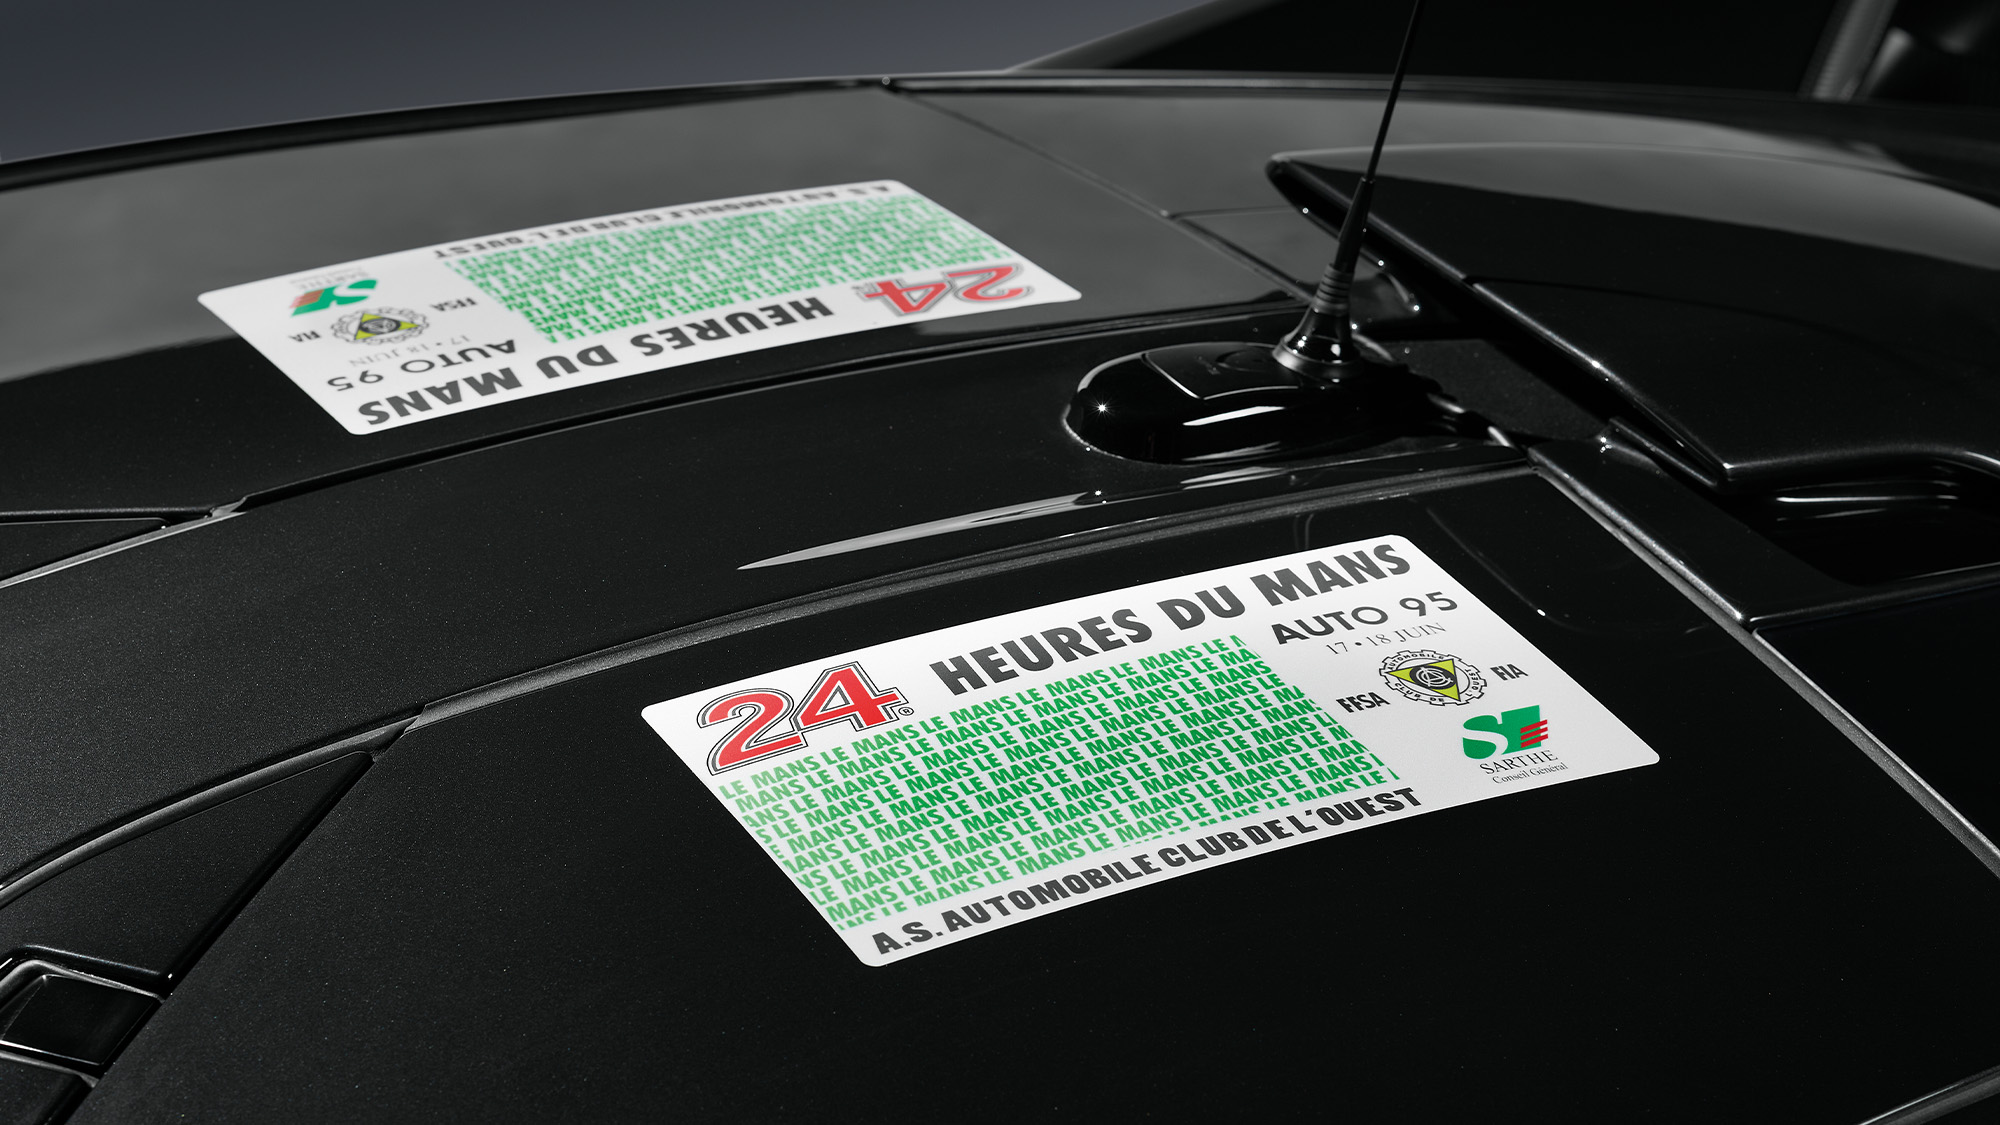 Scrutineering sticker for the limited edition McLaren Senna GTR LM Le Mans limited edition cars